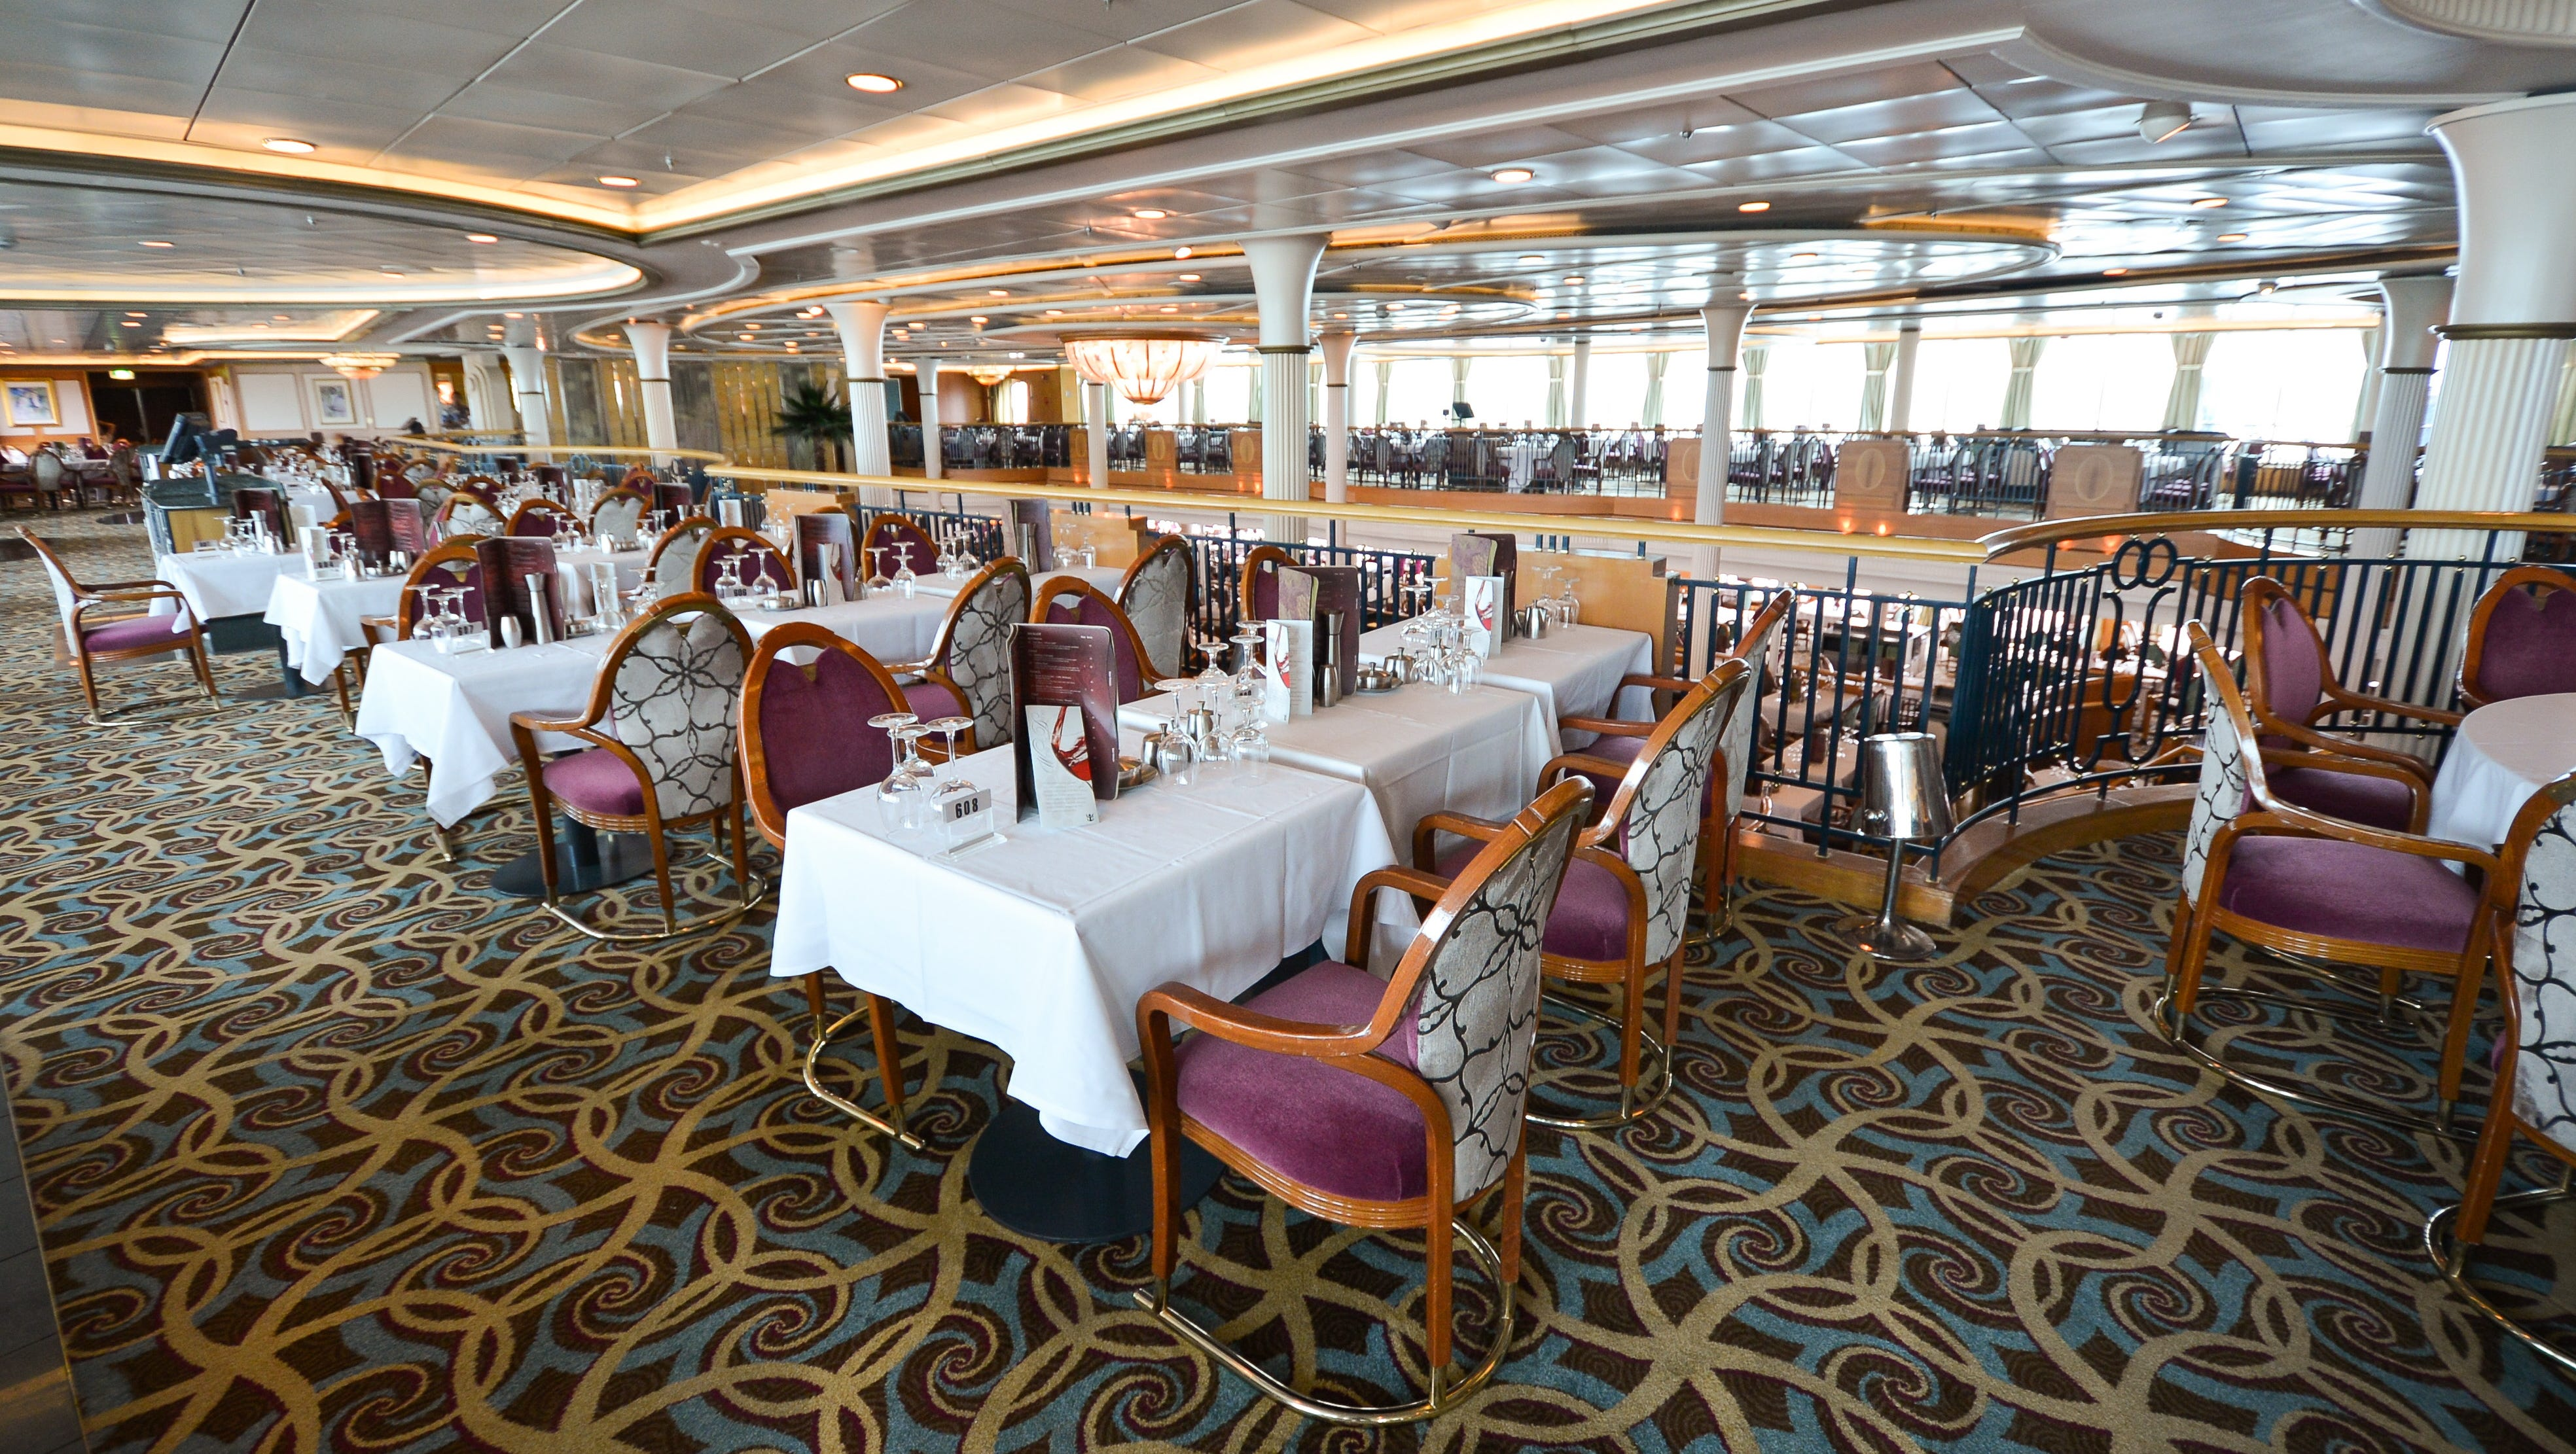 The Great Gatsby Dining Room can hold 1,039 passengers at a time and is available at no extra charge.